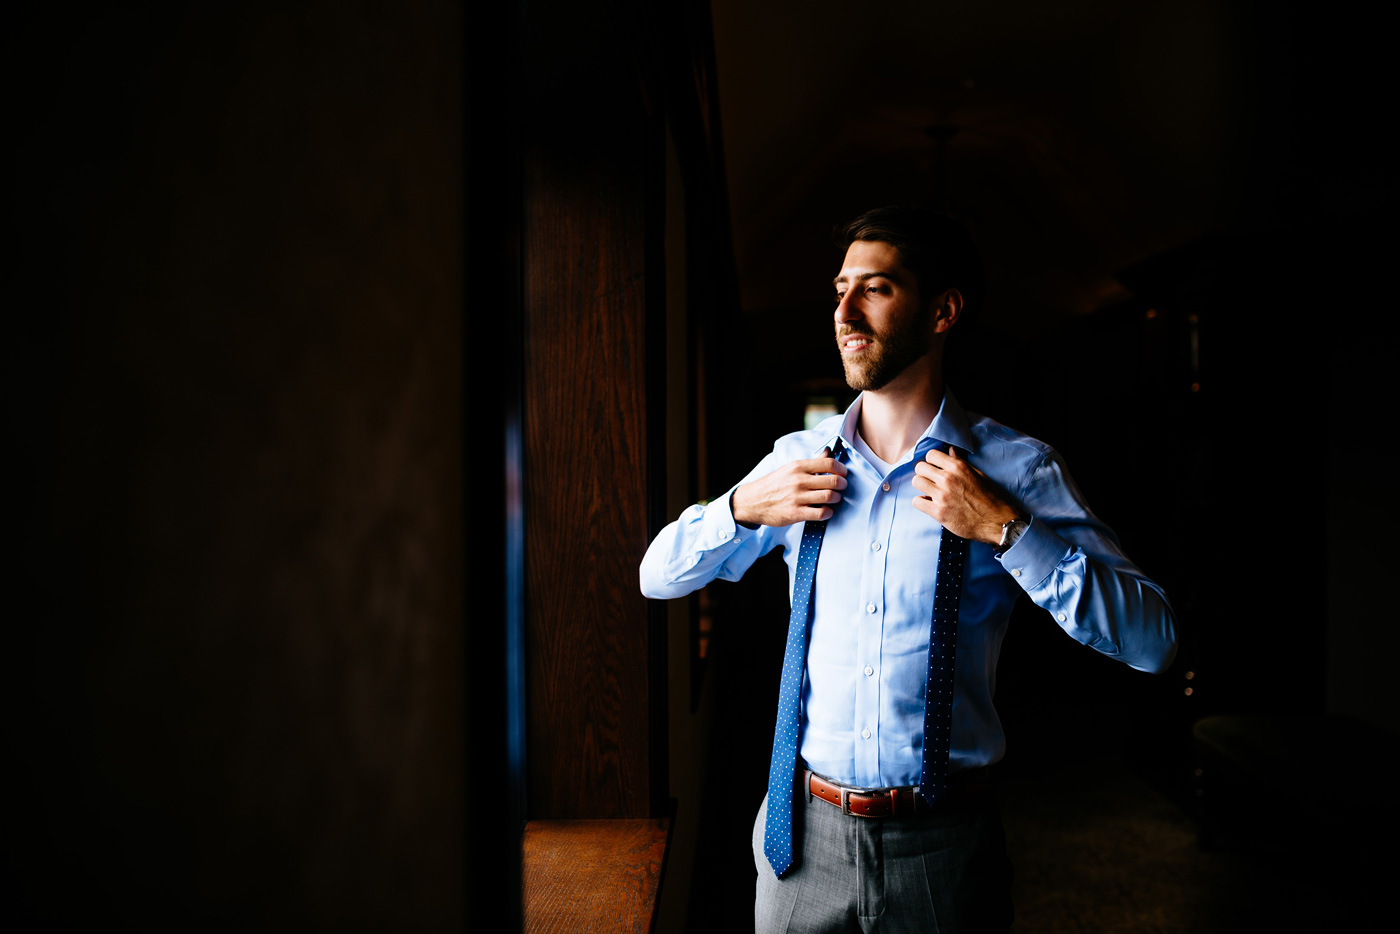 groom getting ready at country club